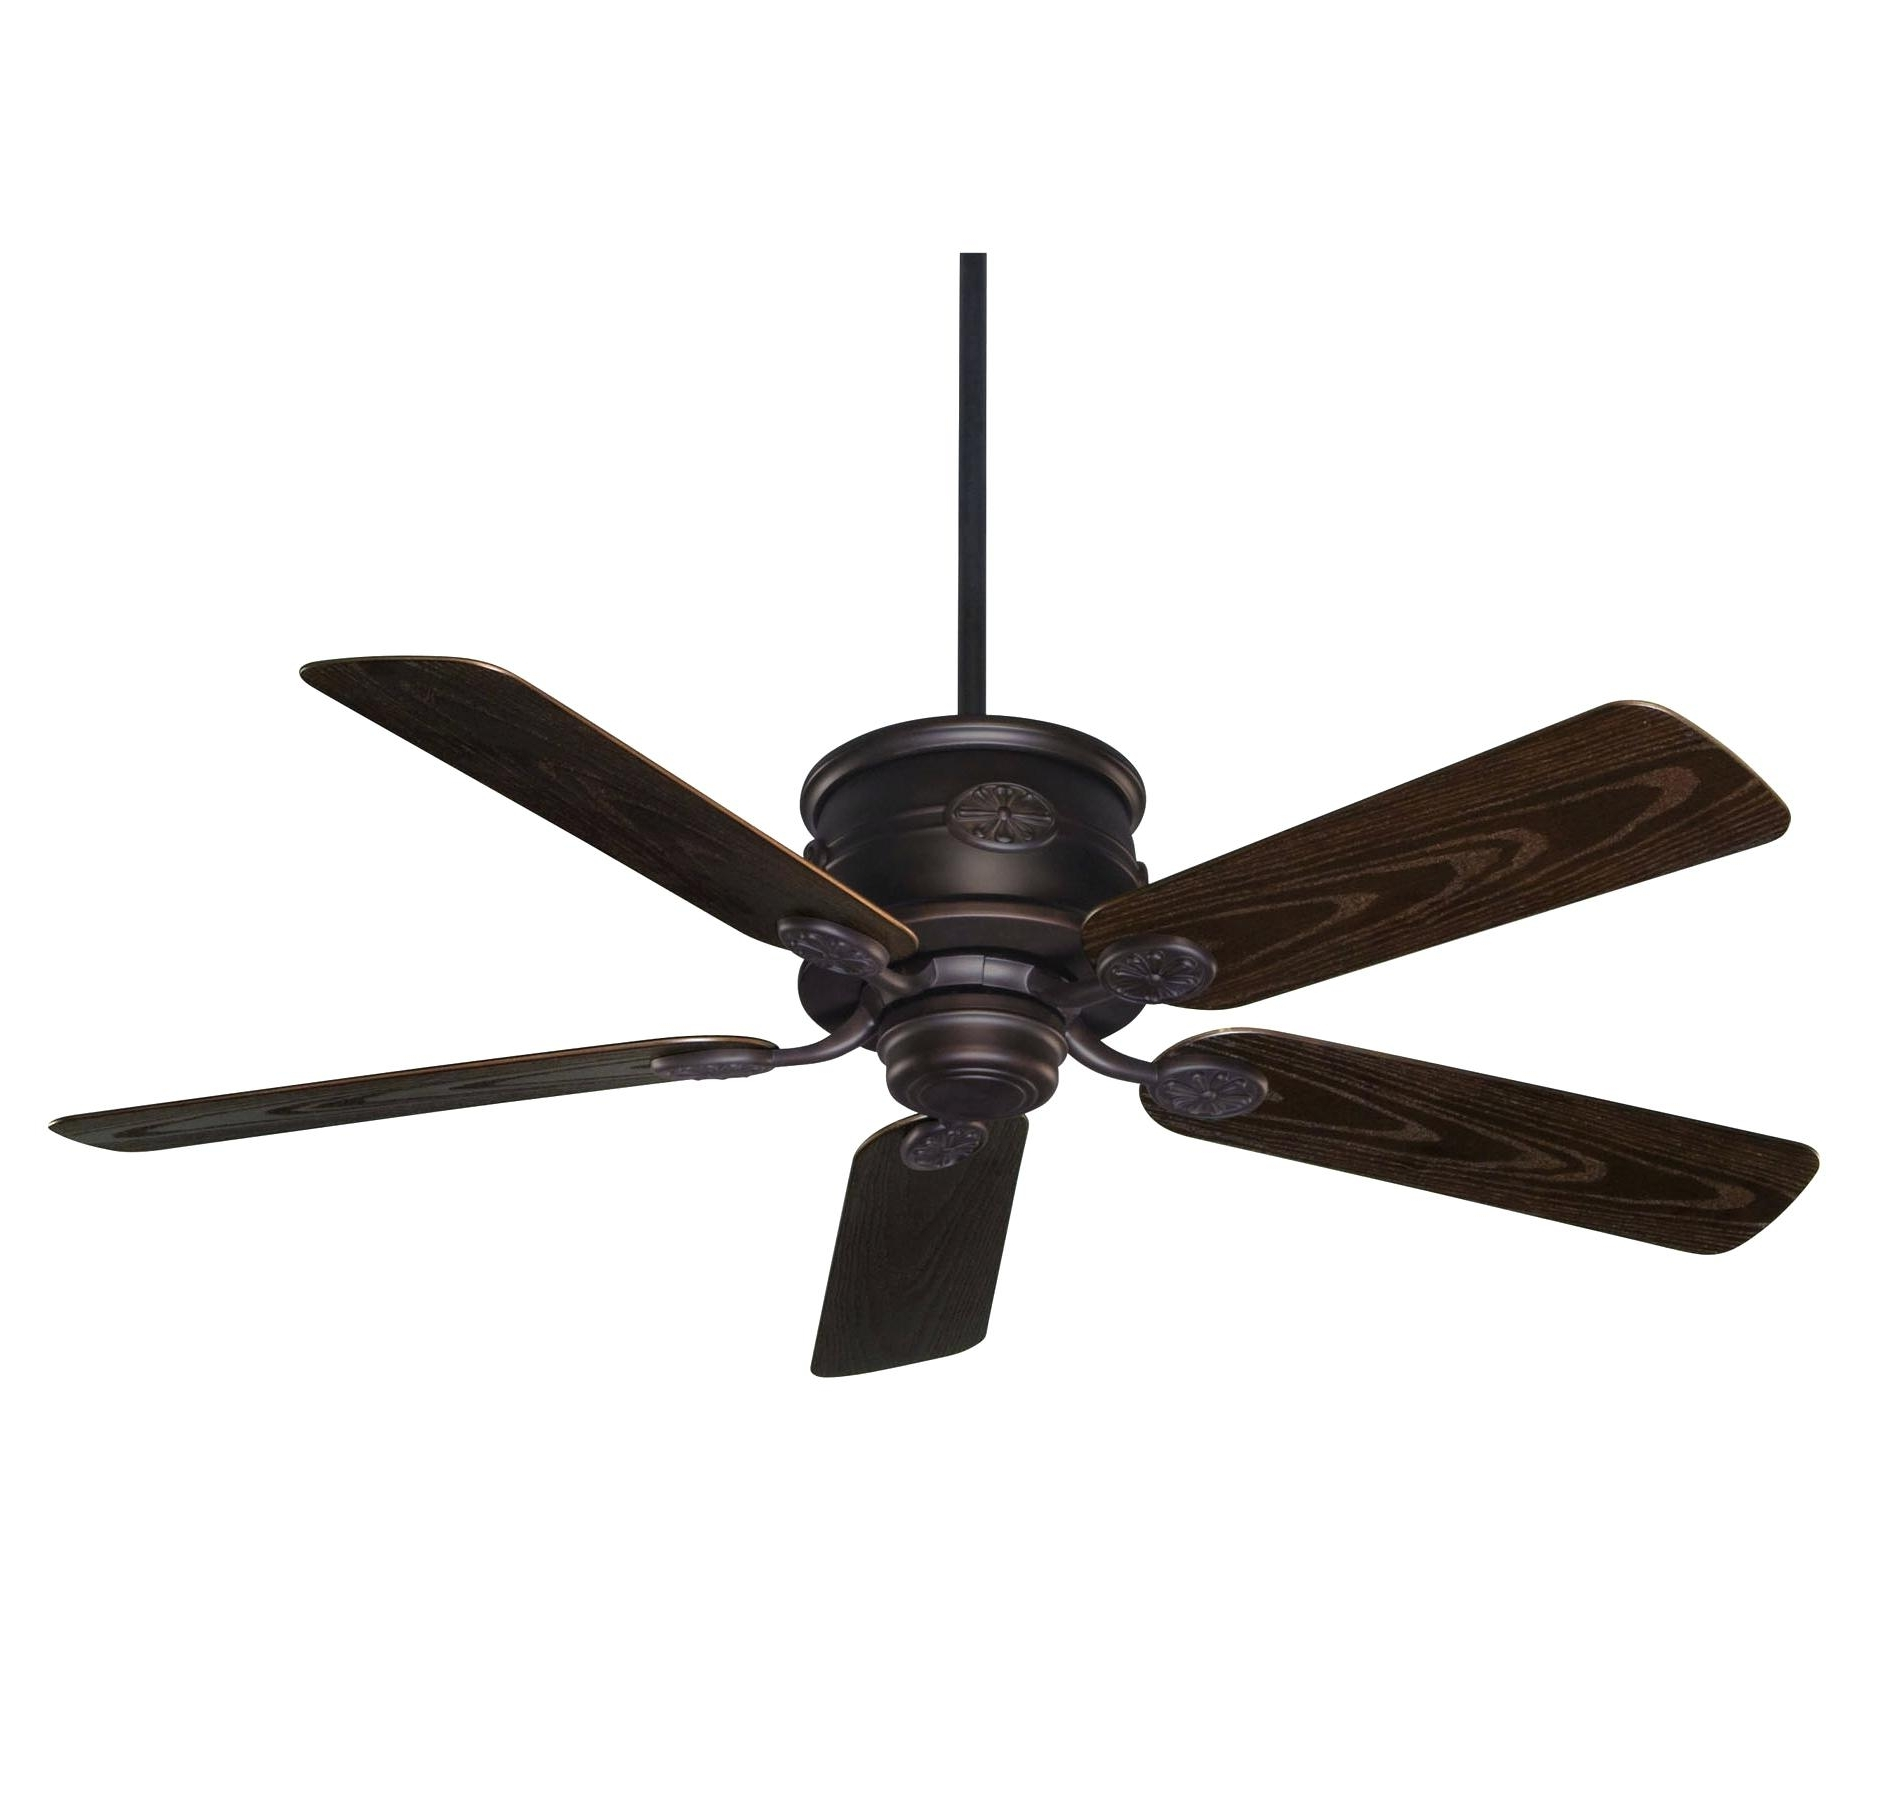 Newest Wayfair Outdoor Ceiling Fans With Lights Throughout Wayfair Ceiling Fans S Fan Lights With Remote Hugger (View 11 of 20)